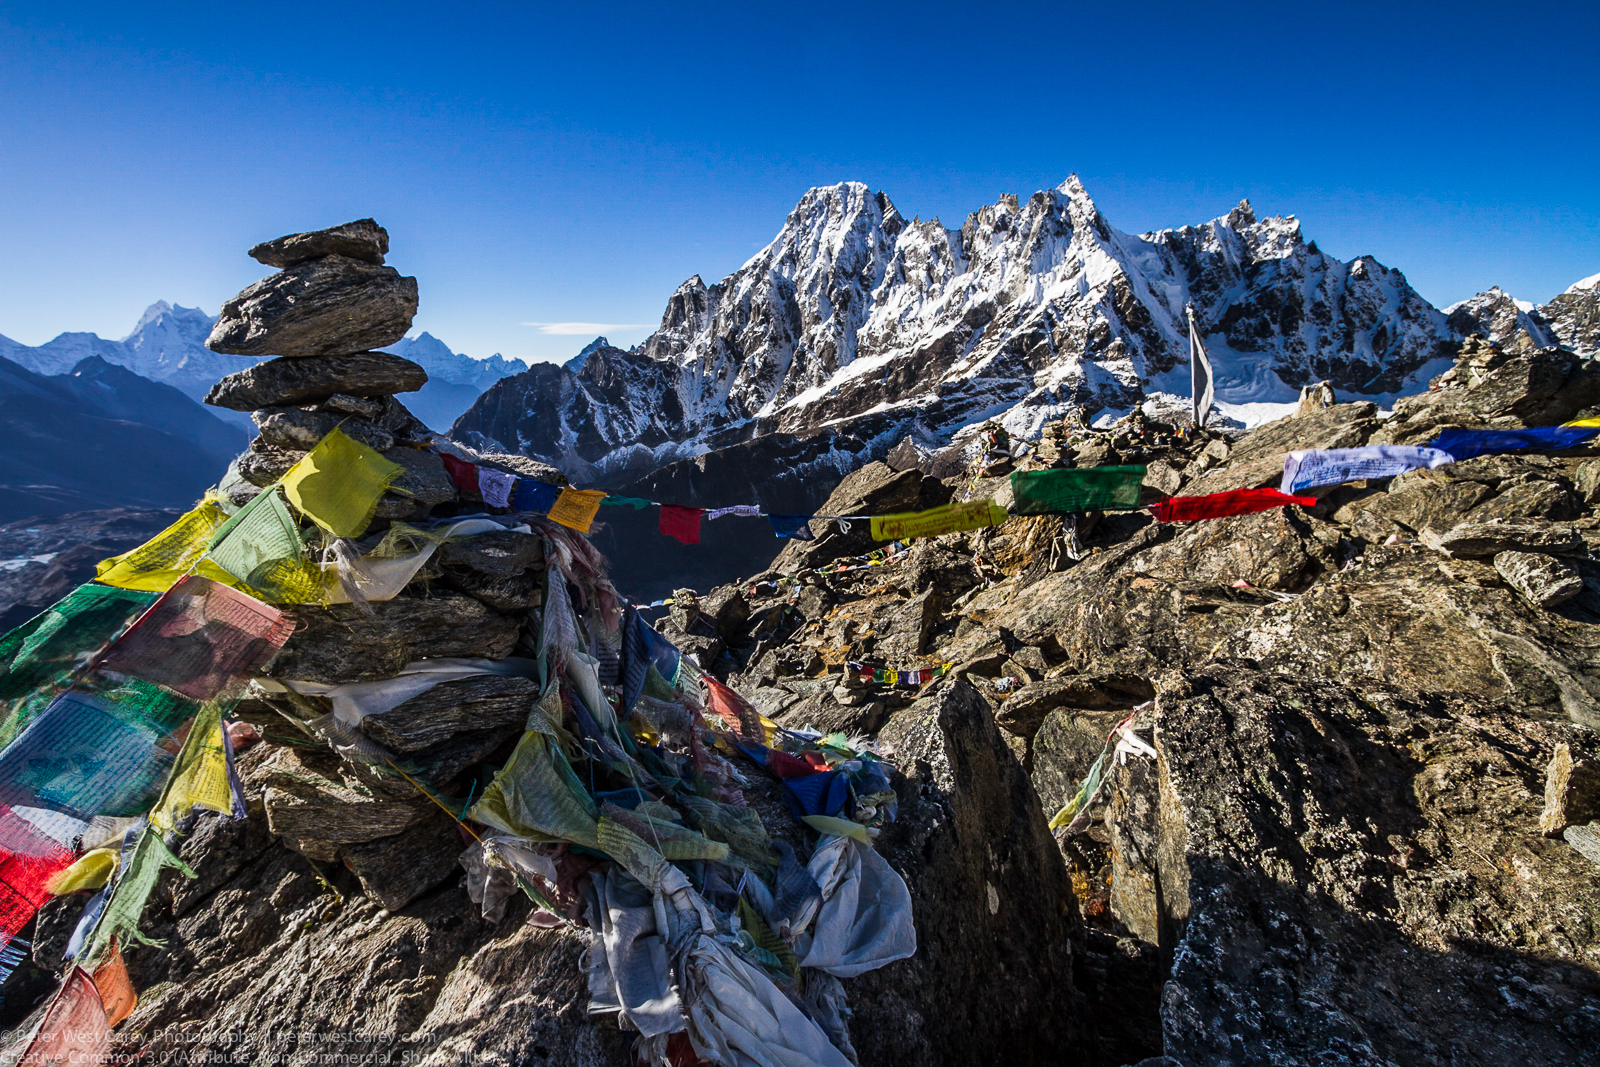 Prayer Flags And The Machermo Range From Gokyo Ri, Sagarmatha Na